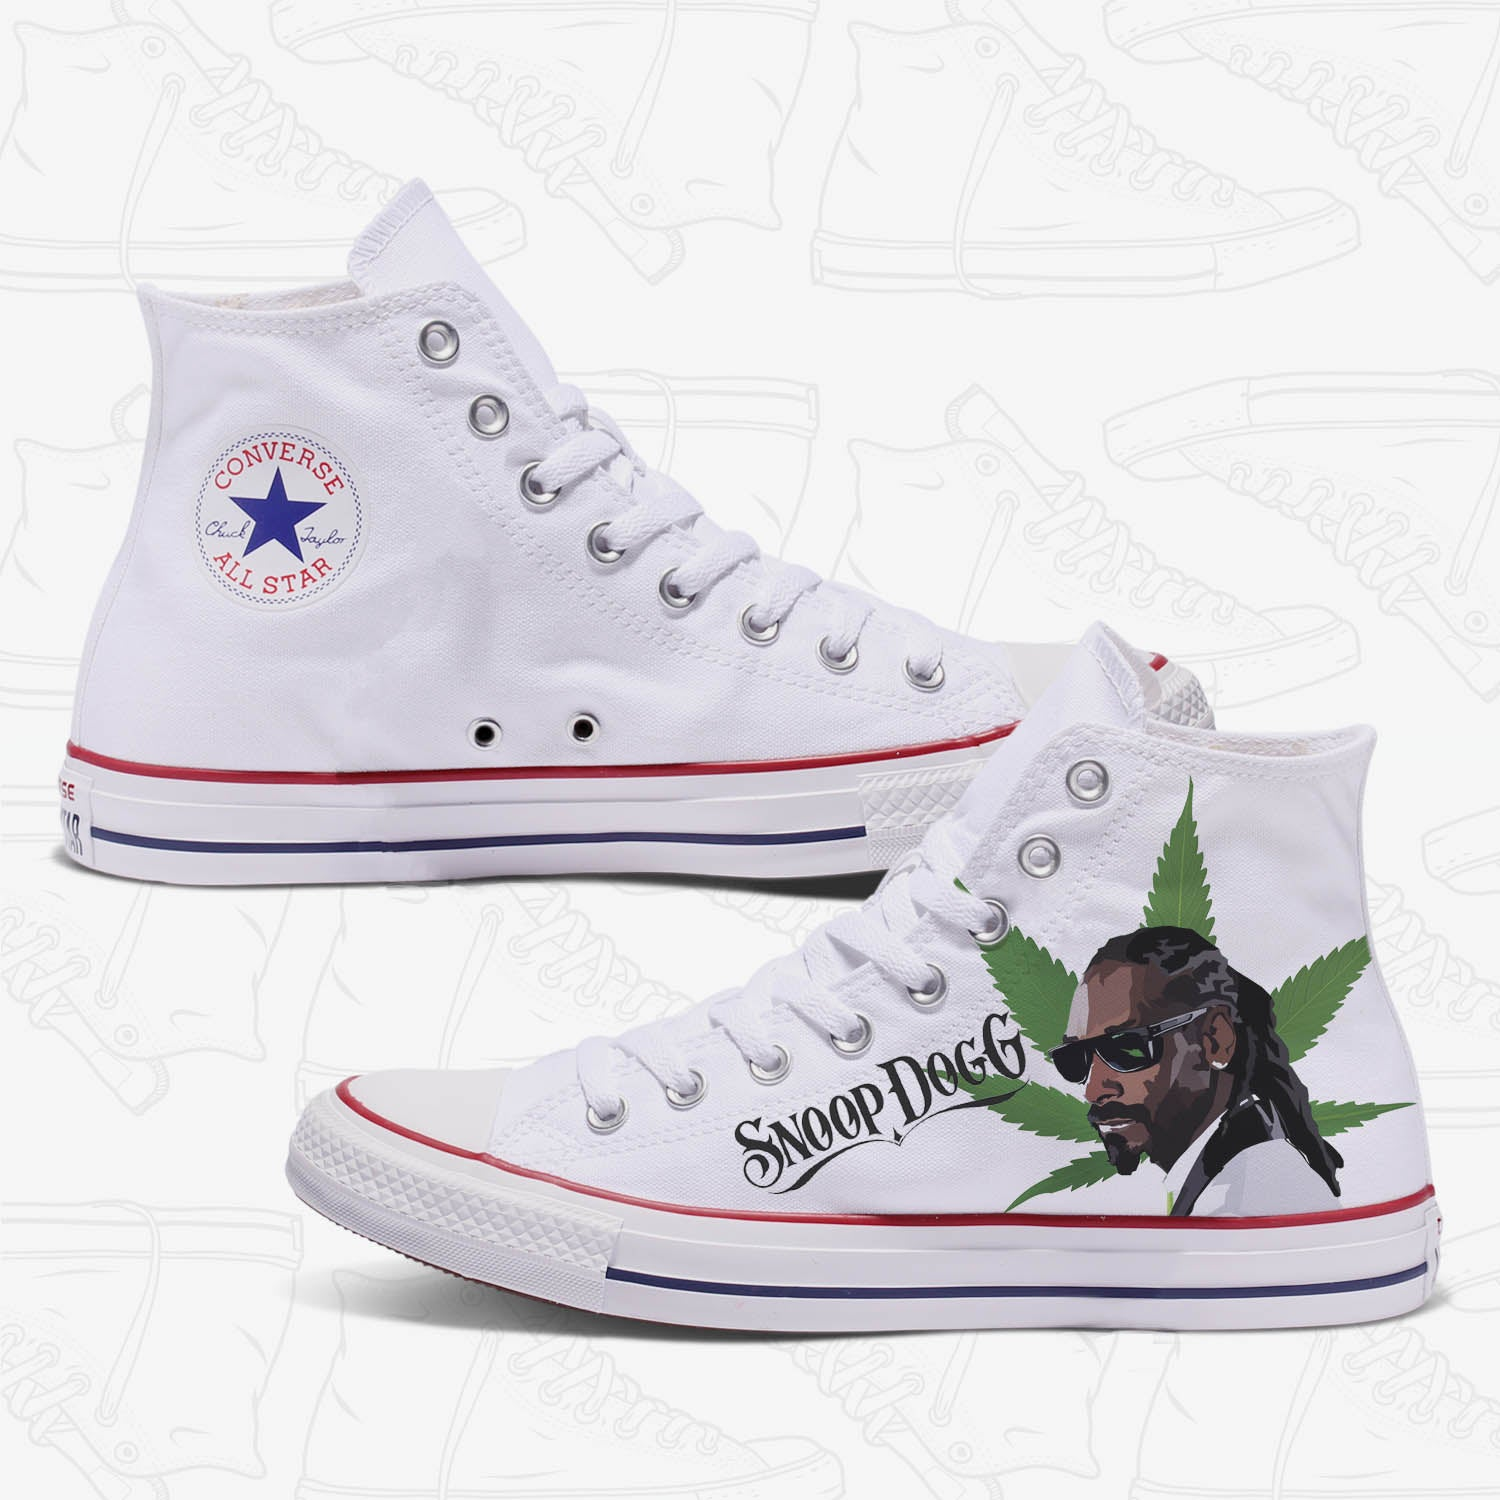 Snoop Dogg Custom Converse